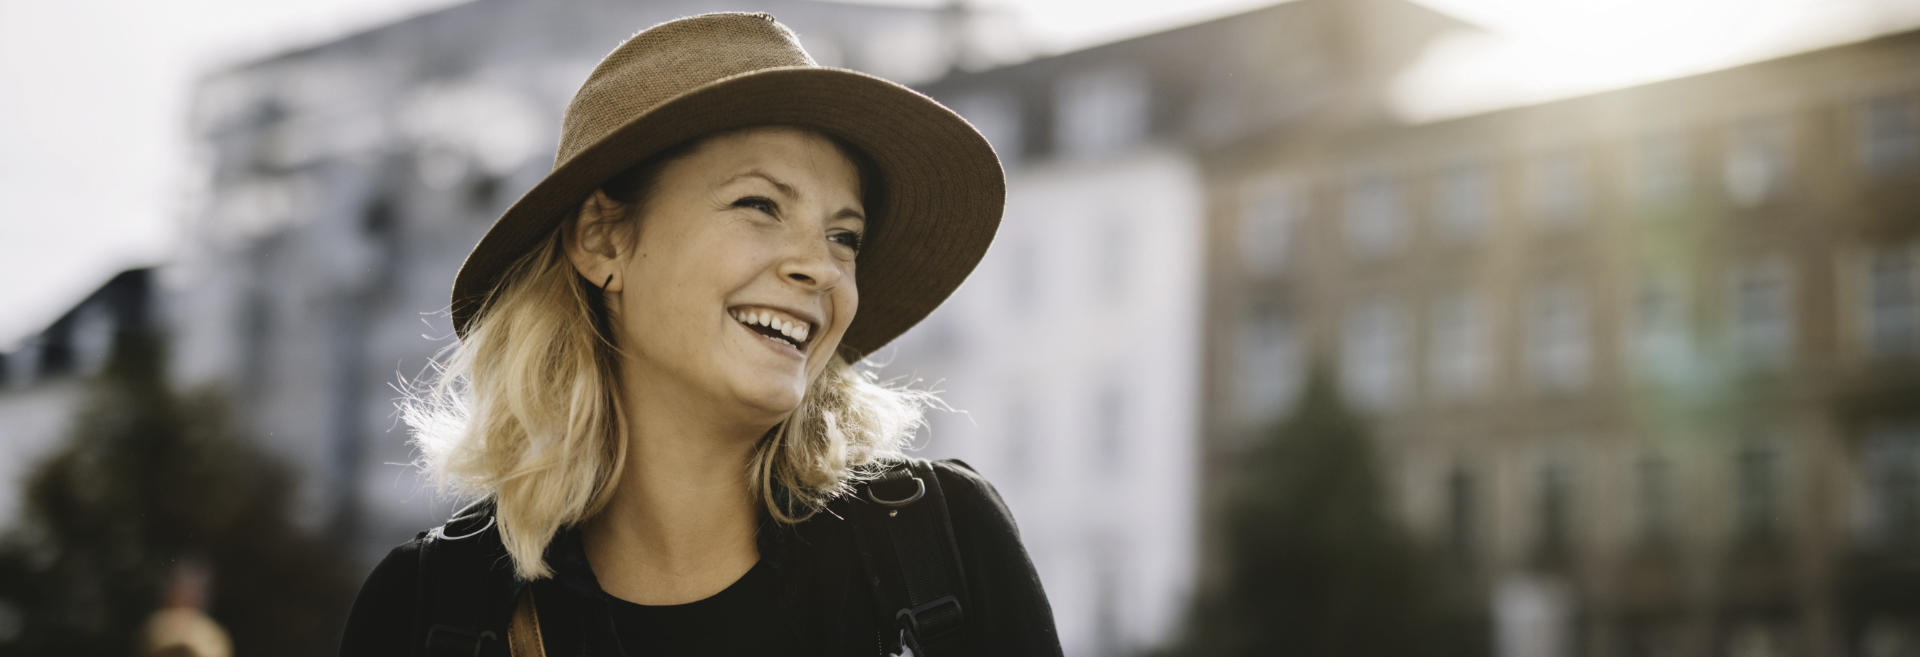 broadly smiling woman with hat sightseeing a city